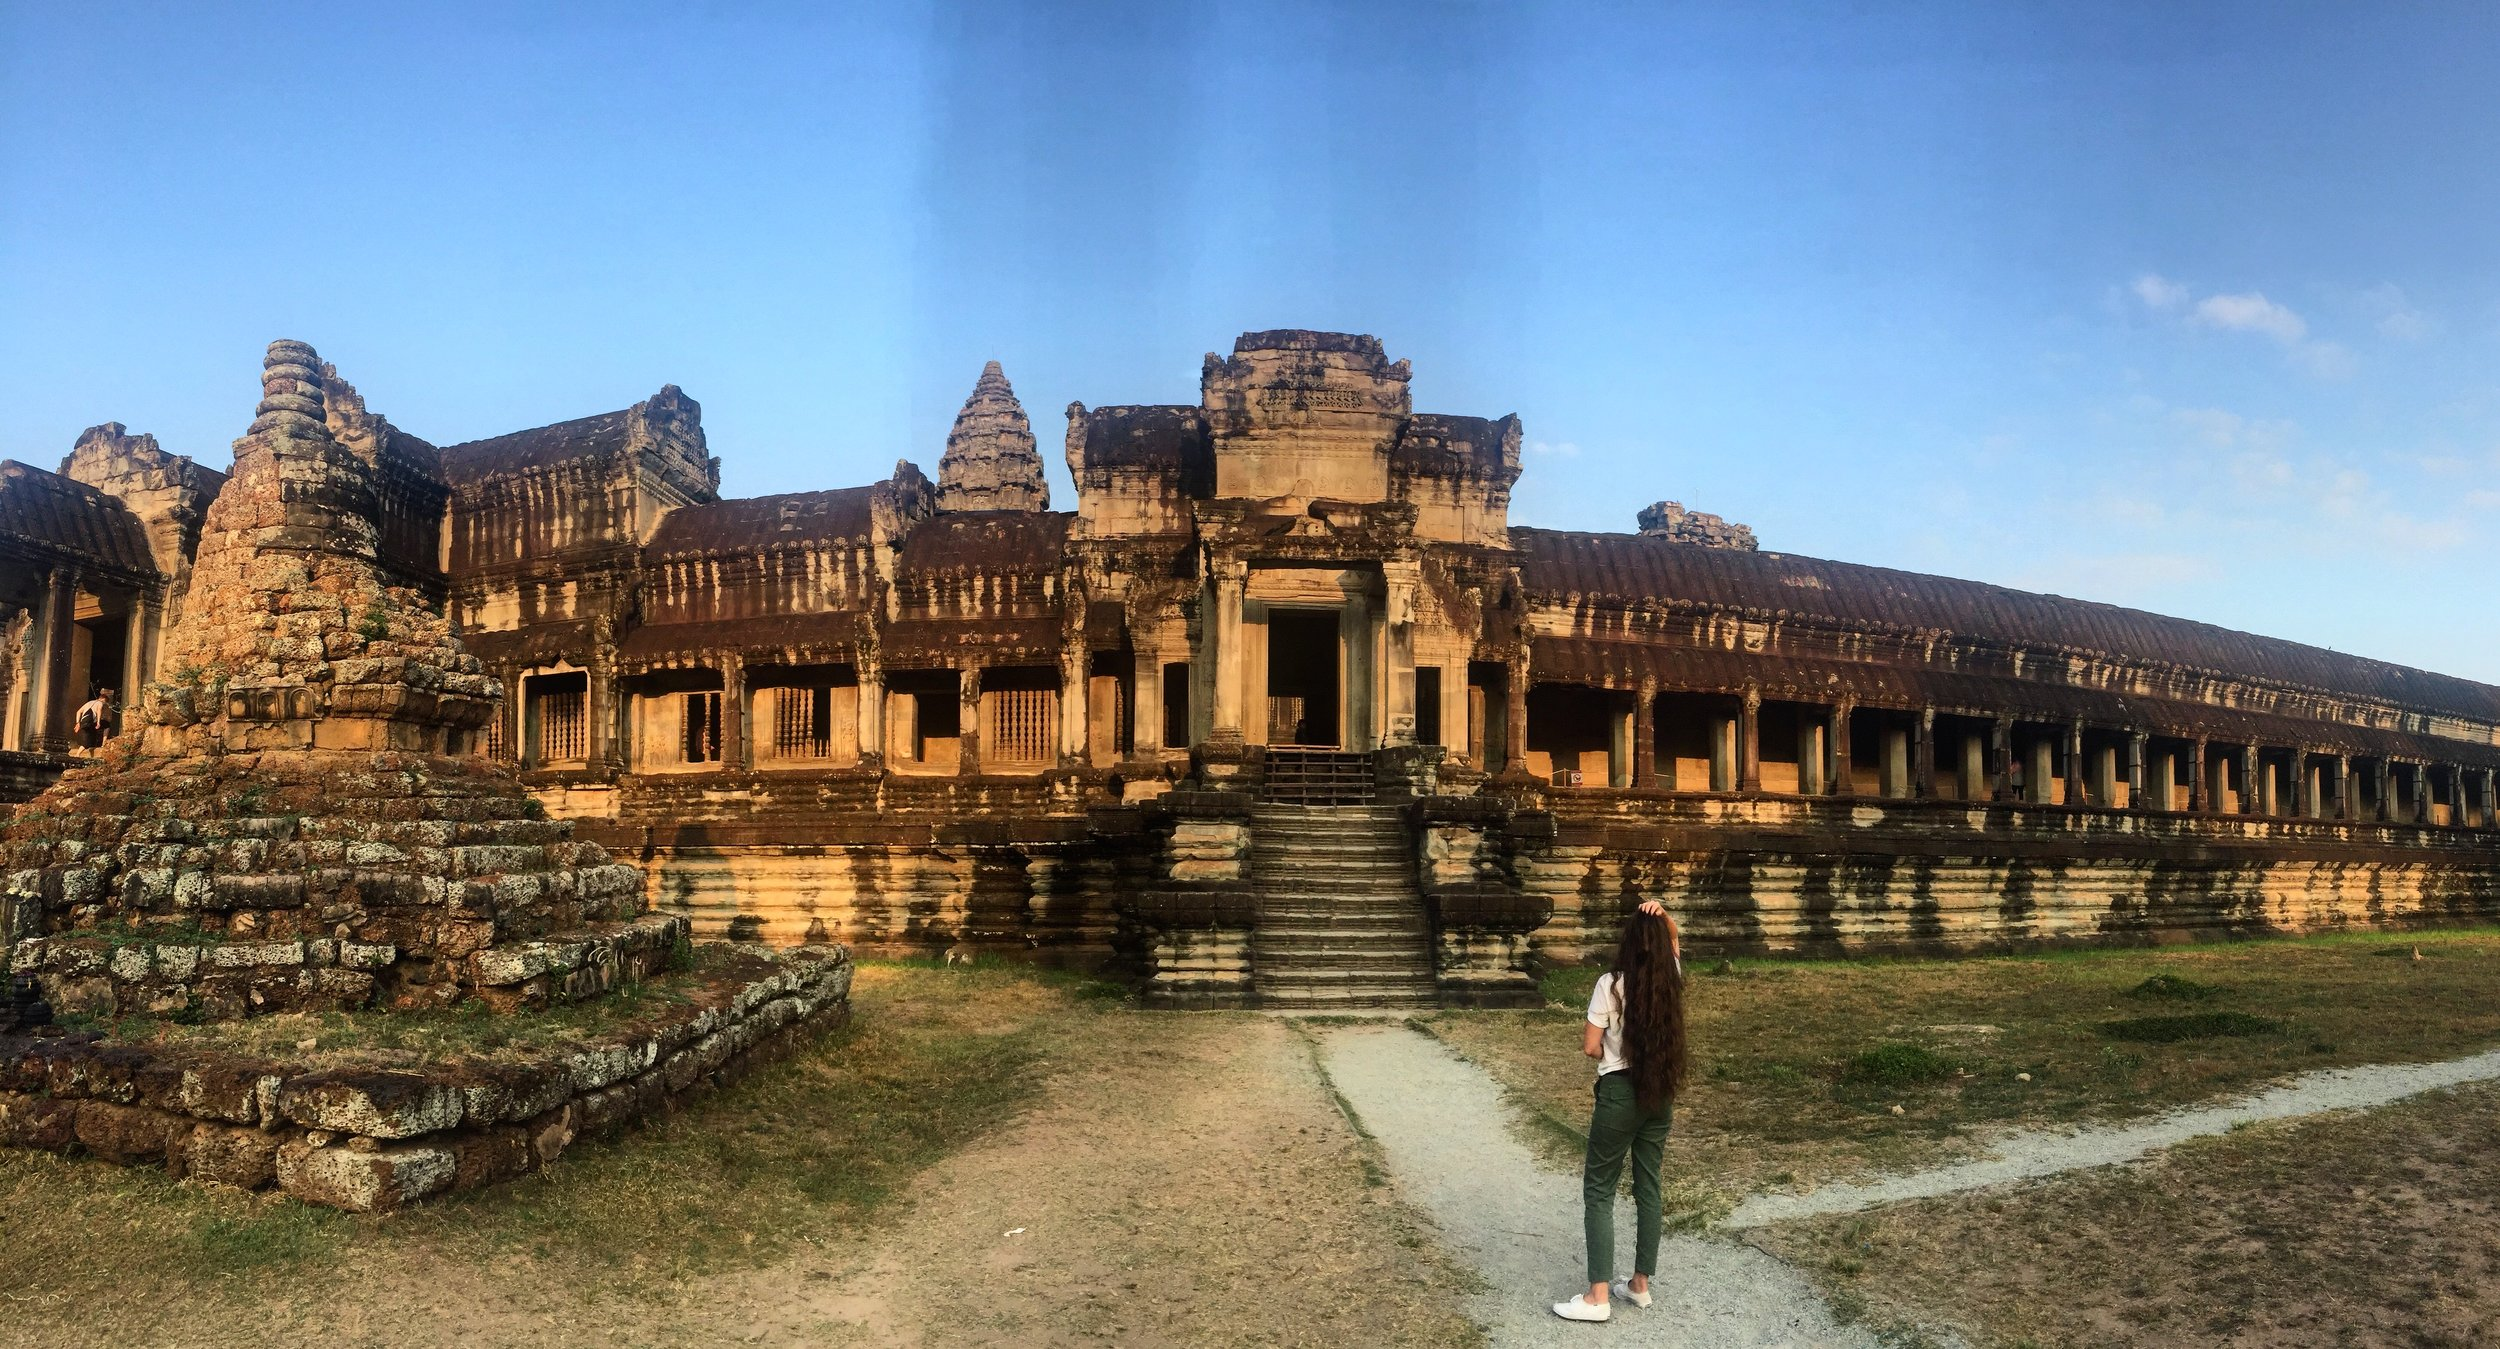 Below the back steps of Angkor Wat (Capital Temple) in the Siem Reap Province of Cambodia.